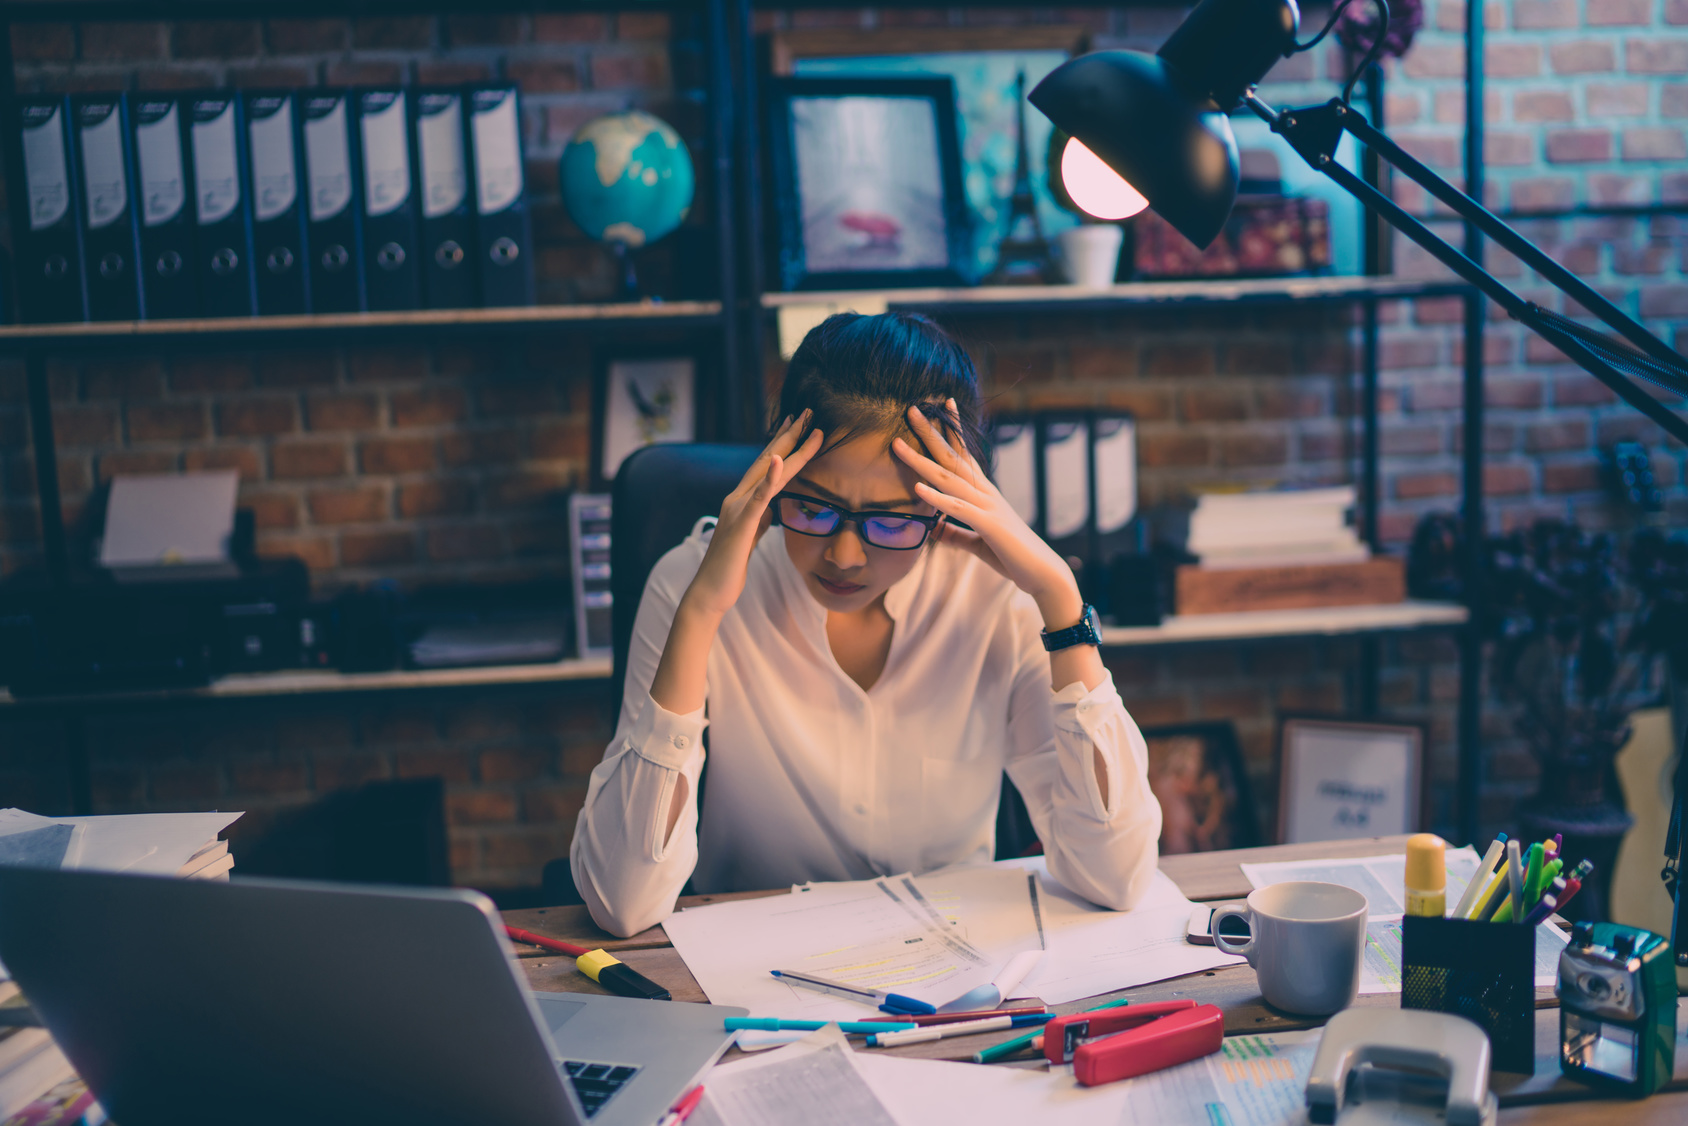 4 Ways to Deal With Daily Stress for Busy Entrepreneurs